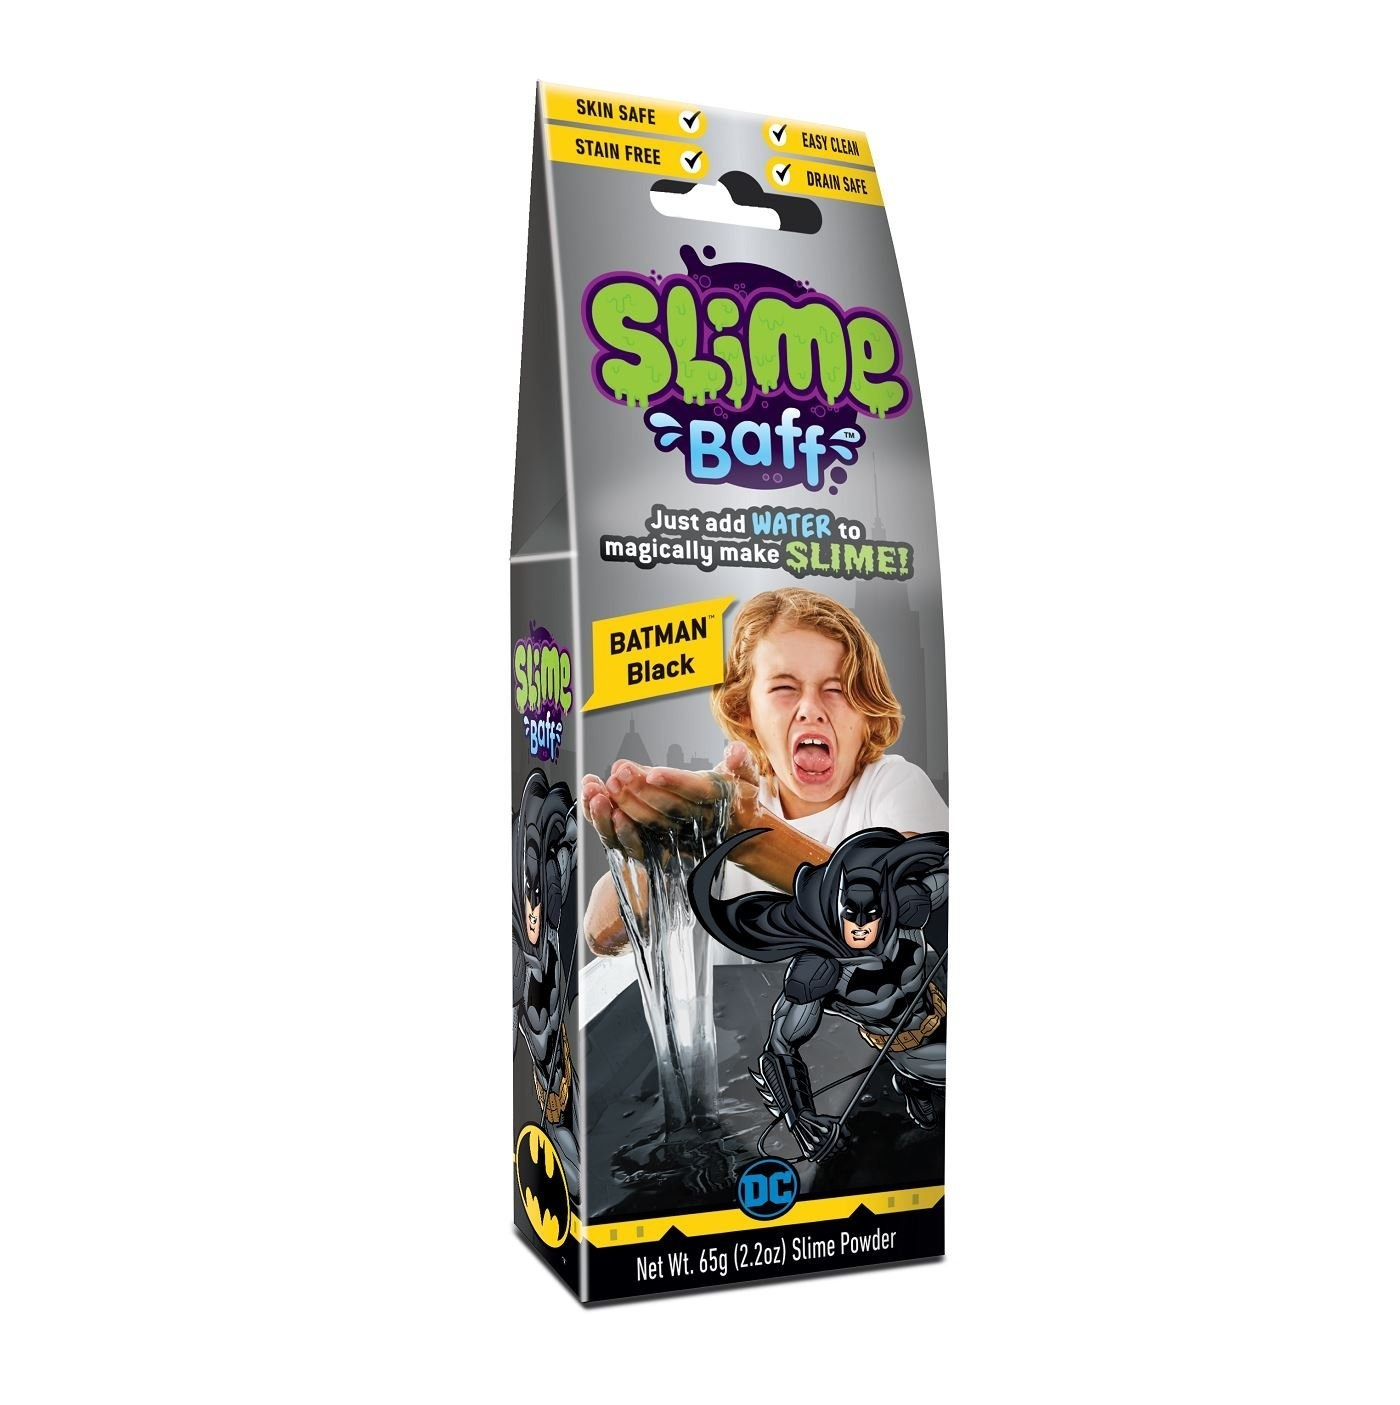 Slime baff batman black 65g just add water to magically make slime slime baff batman black 65g just add water to magically make slime by zimplikids shop online for toys in new zealand ccuart Gallery